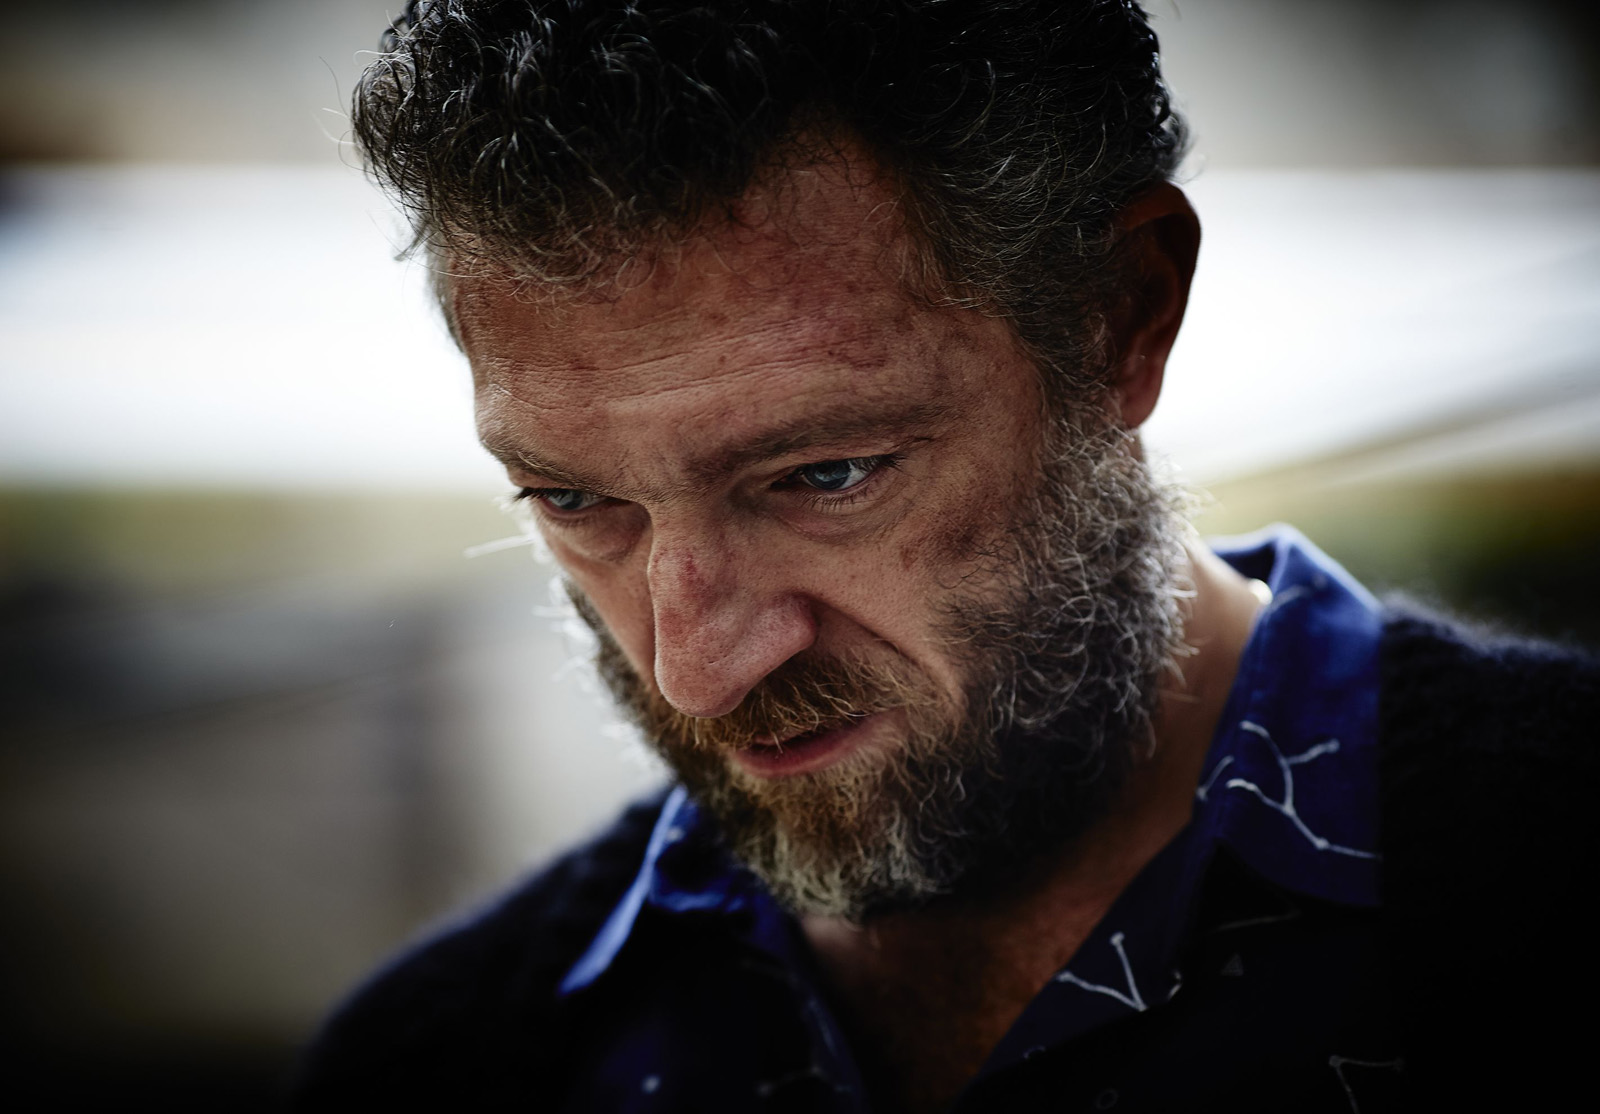 Vincent Cassel Leads a Cult In New Trailer For 'Partisan'